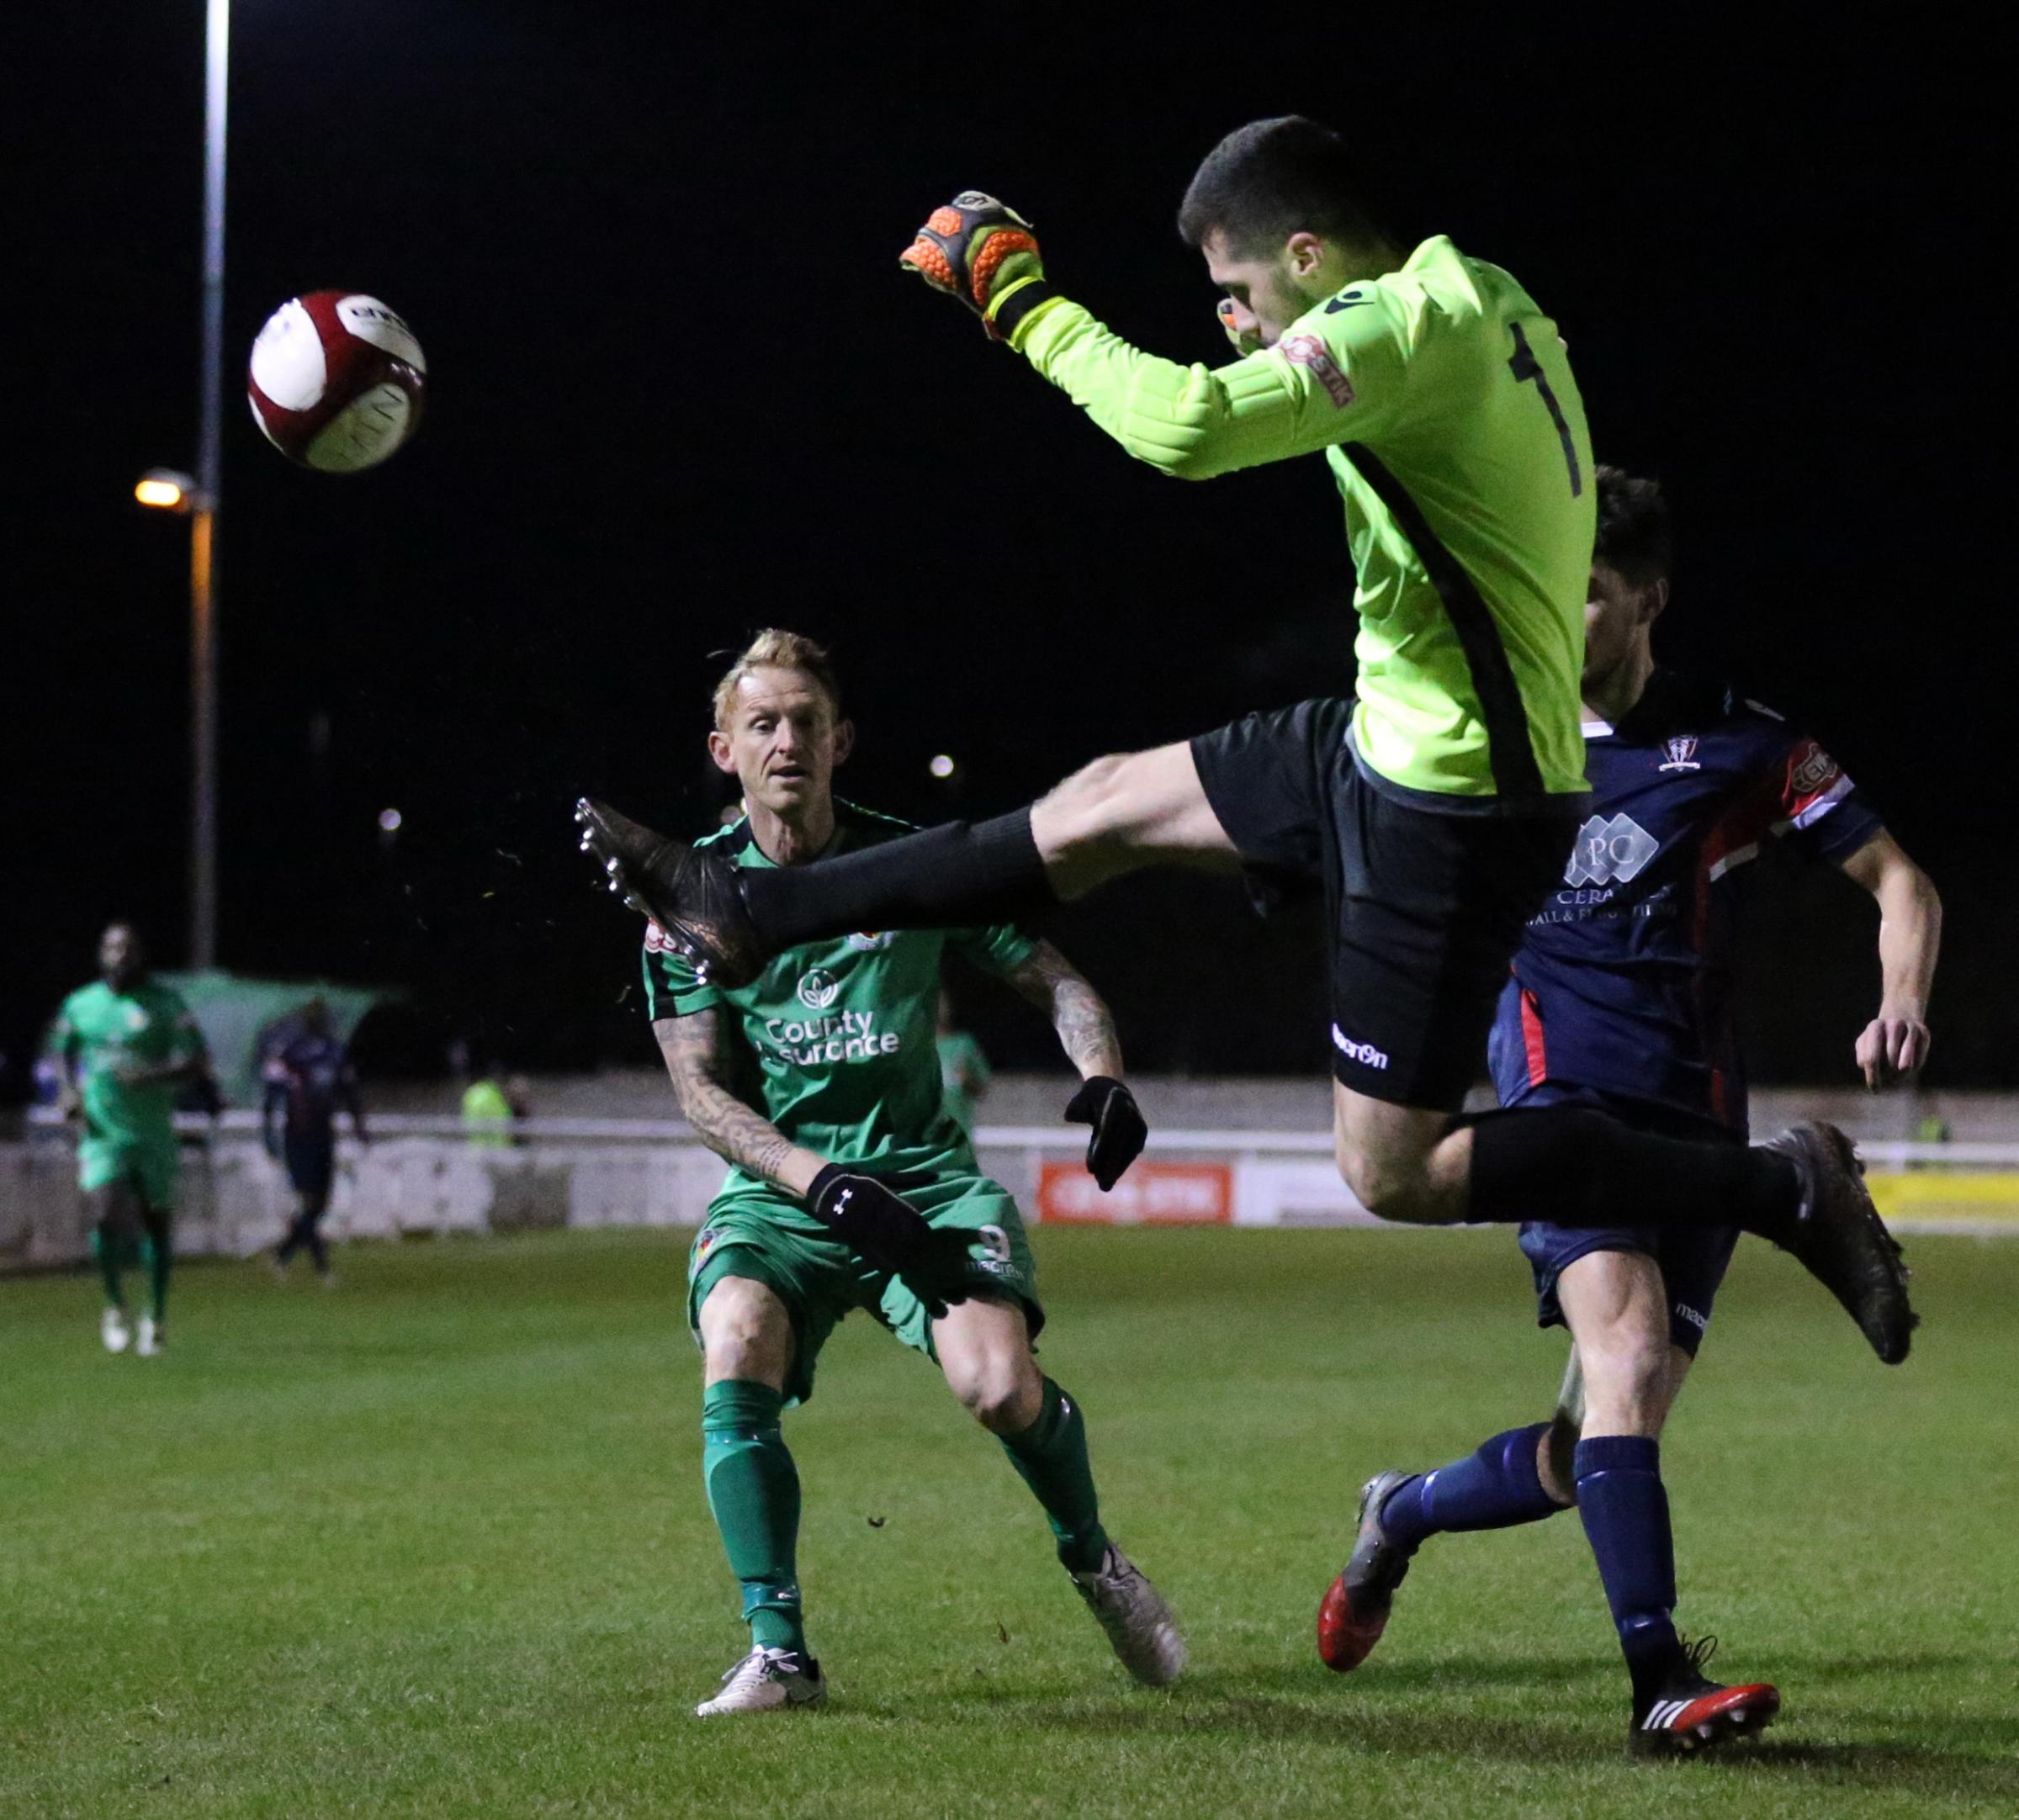 Witton Albion goalkeeper Ryan Neild goes airborne to make a clearance as Nantwich Town's Steve Jones closes in. Picture: Jonathan White